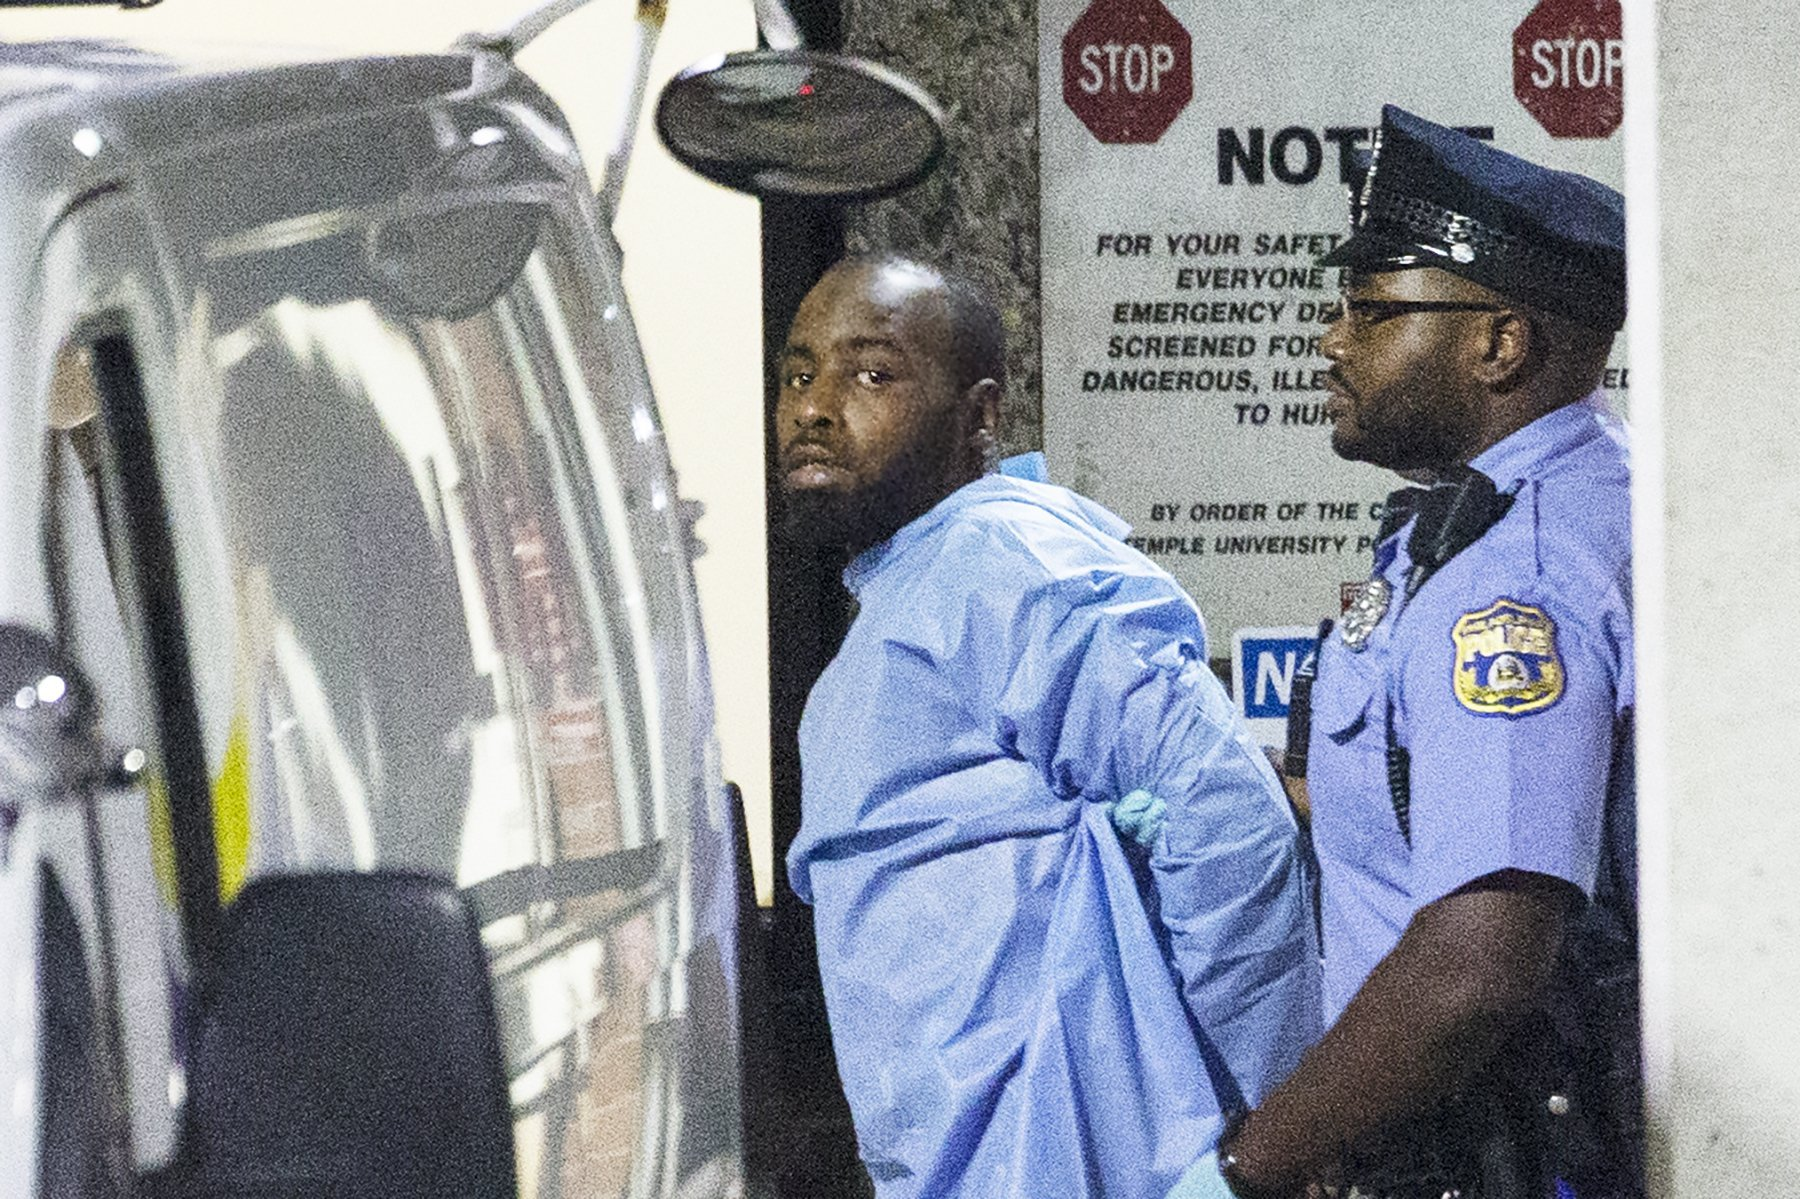 Attempted murder charges filed against man accused of shooting 6 Philadelphia cops